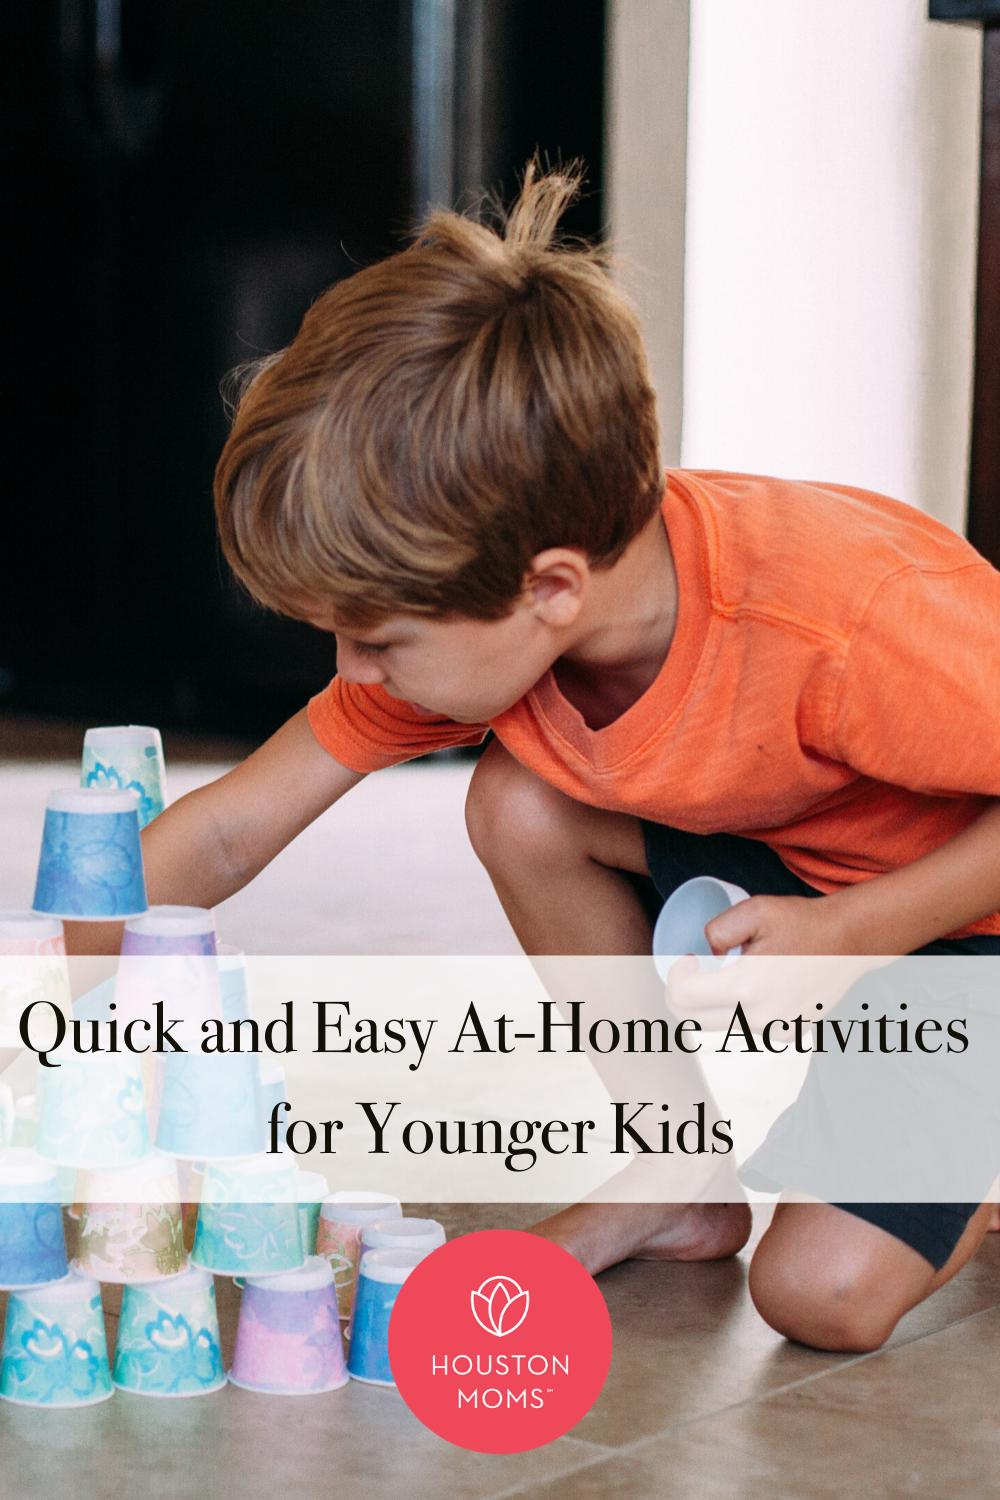 "Houston Moms ""Quick and Easy At-Home Activities for Younger Kids"" #houstonmomsblog #houstonmoms #momsaroundhouston"